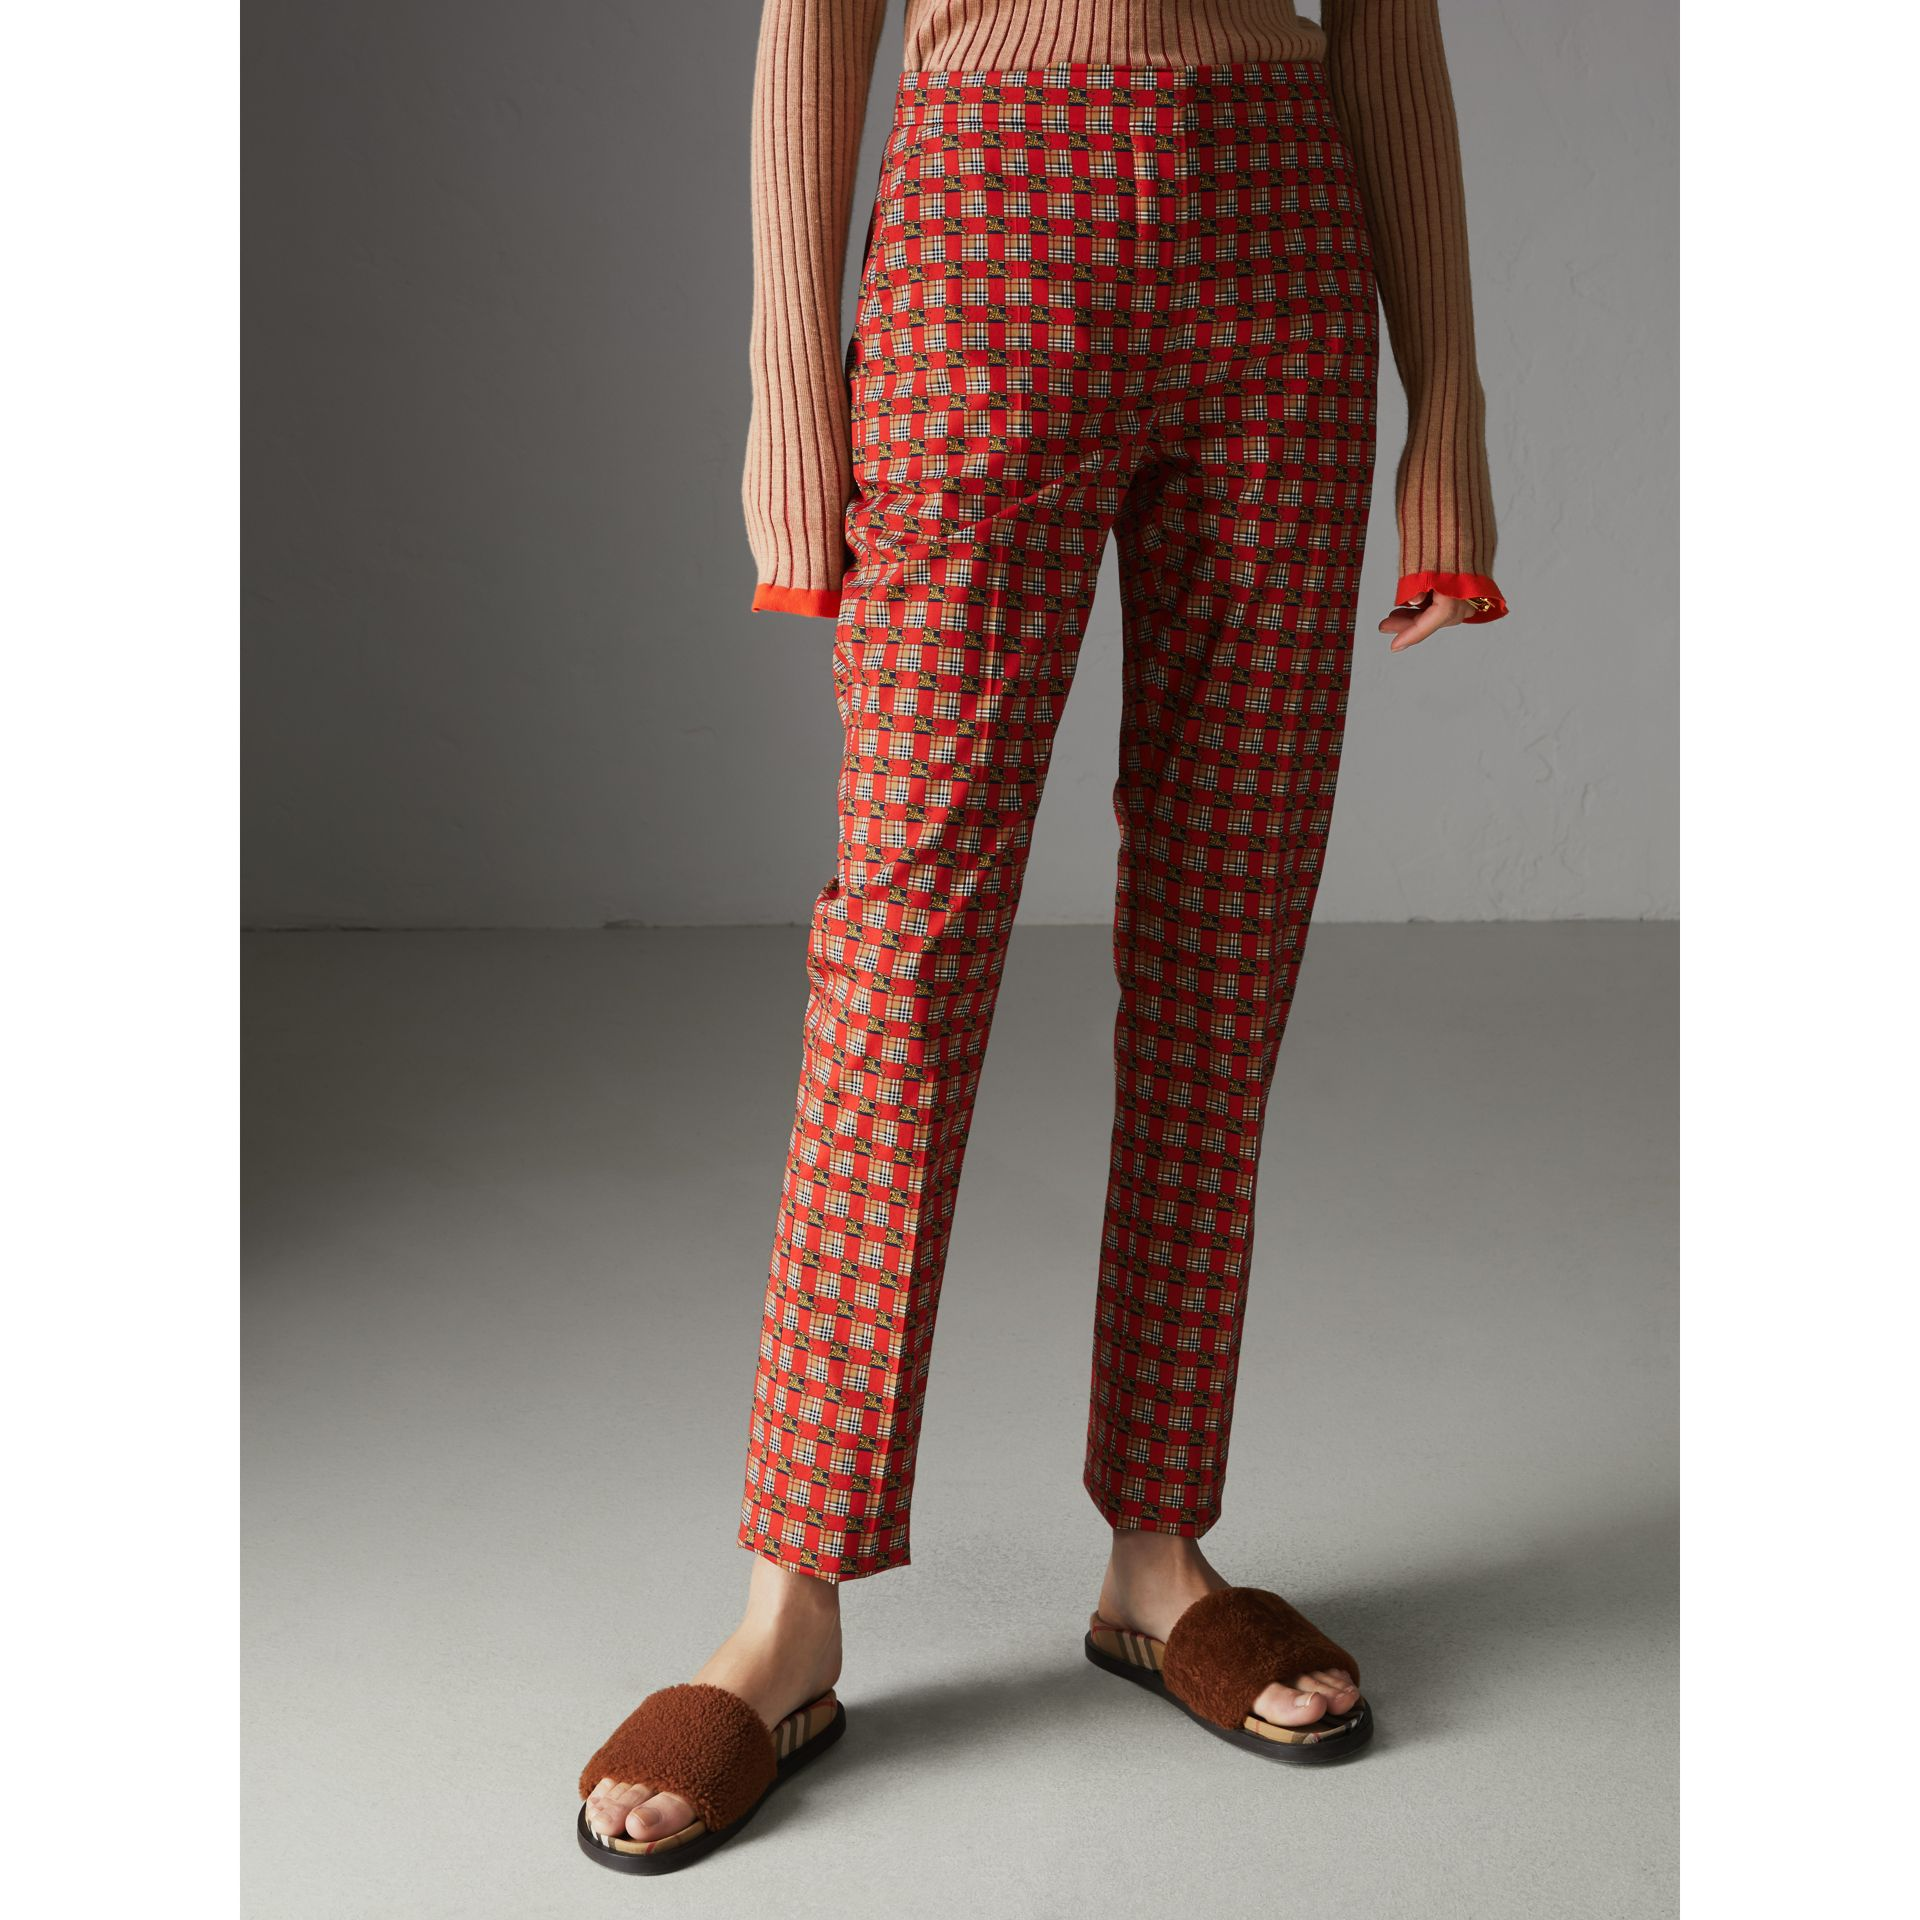 Tiled Archive Print Stretch Cotton Cigarette Trousers in Orange Red - Women | Burberry Canada - gallery image 5